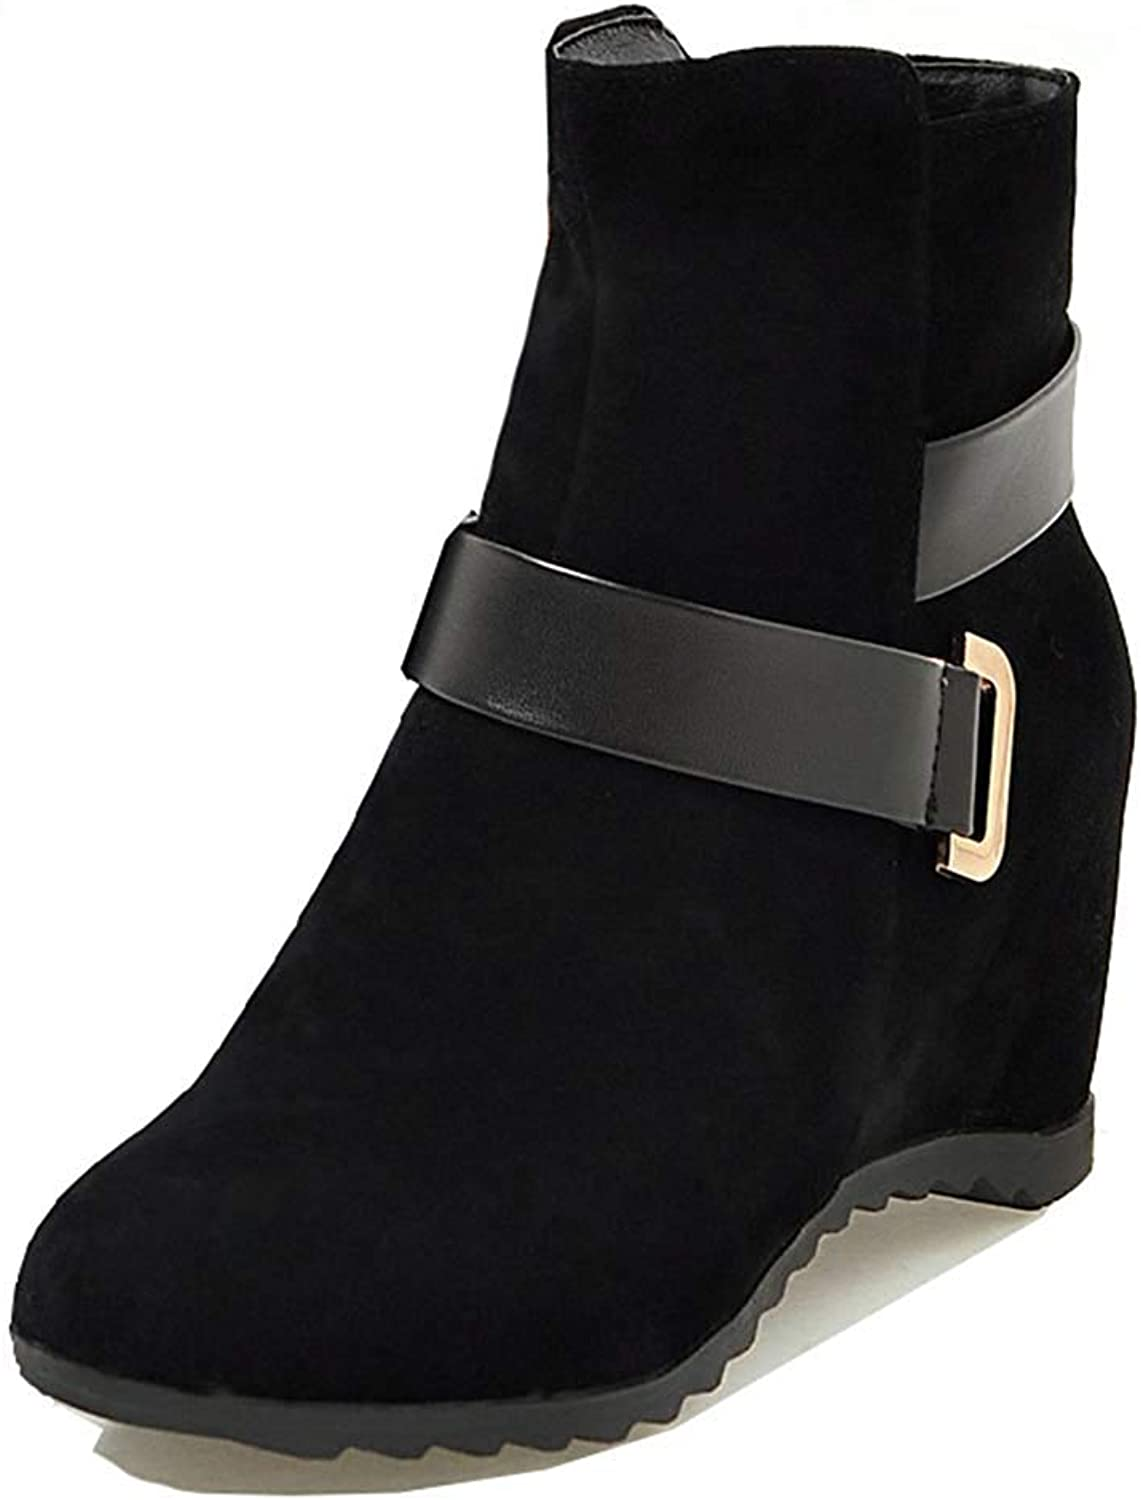 Unm Women's Fashion Strap Round Toe Hidden Wedge Short Boots Mid Elevator Heel Dress Ankle Booties with Zipper